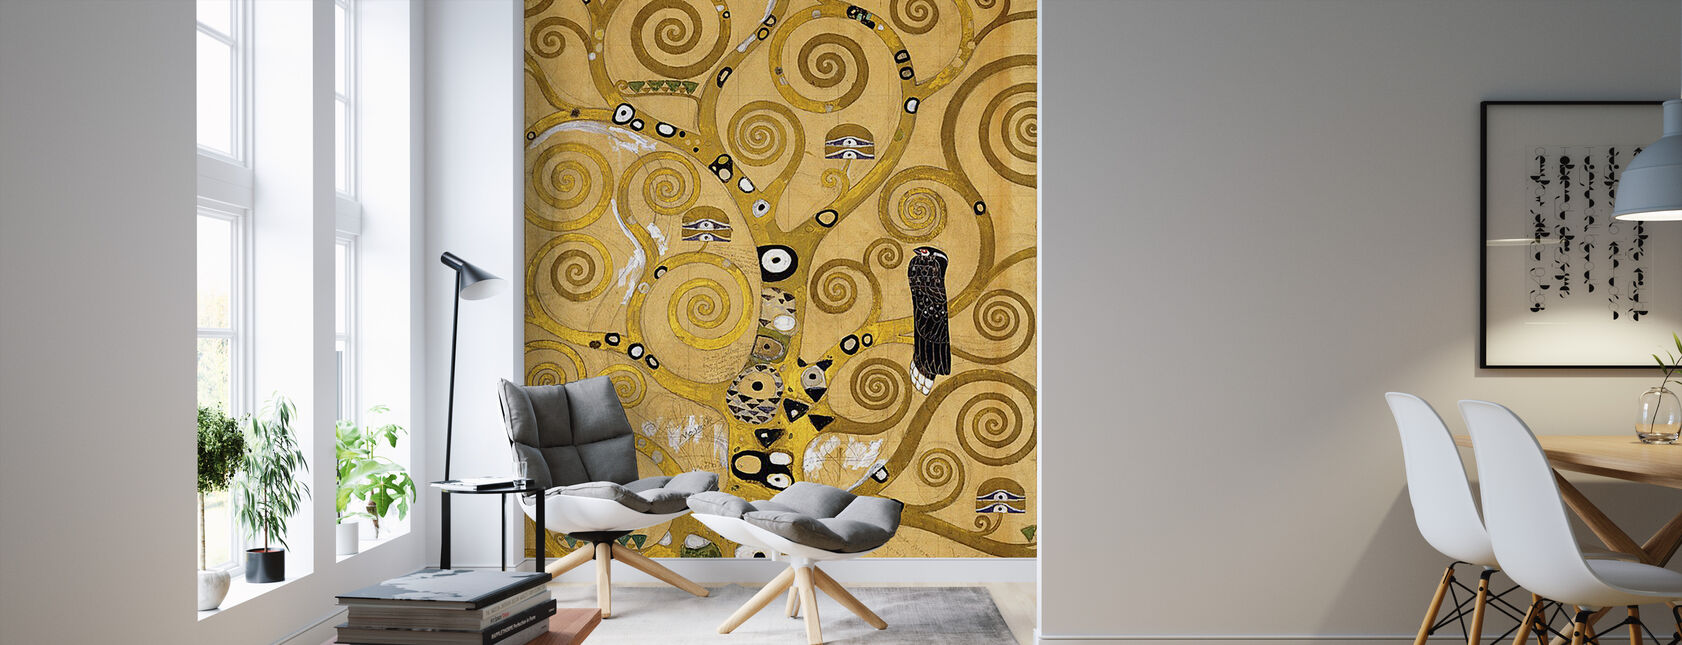 Klimt, Gustav - The Tree of Life - Wallpaper - Living Room